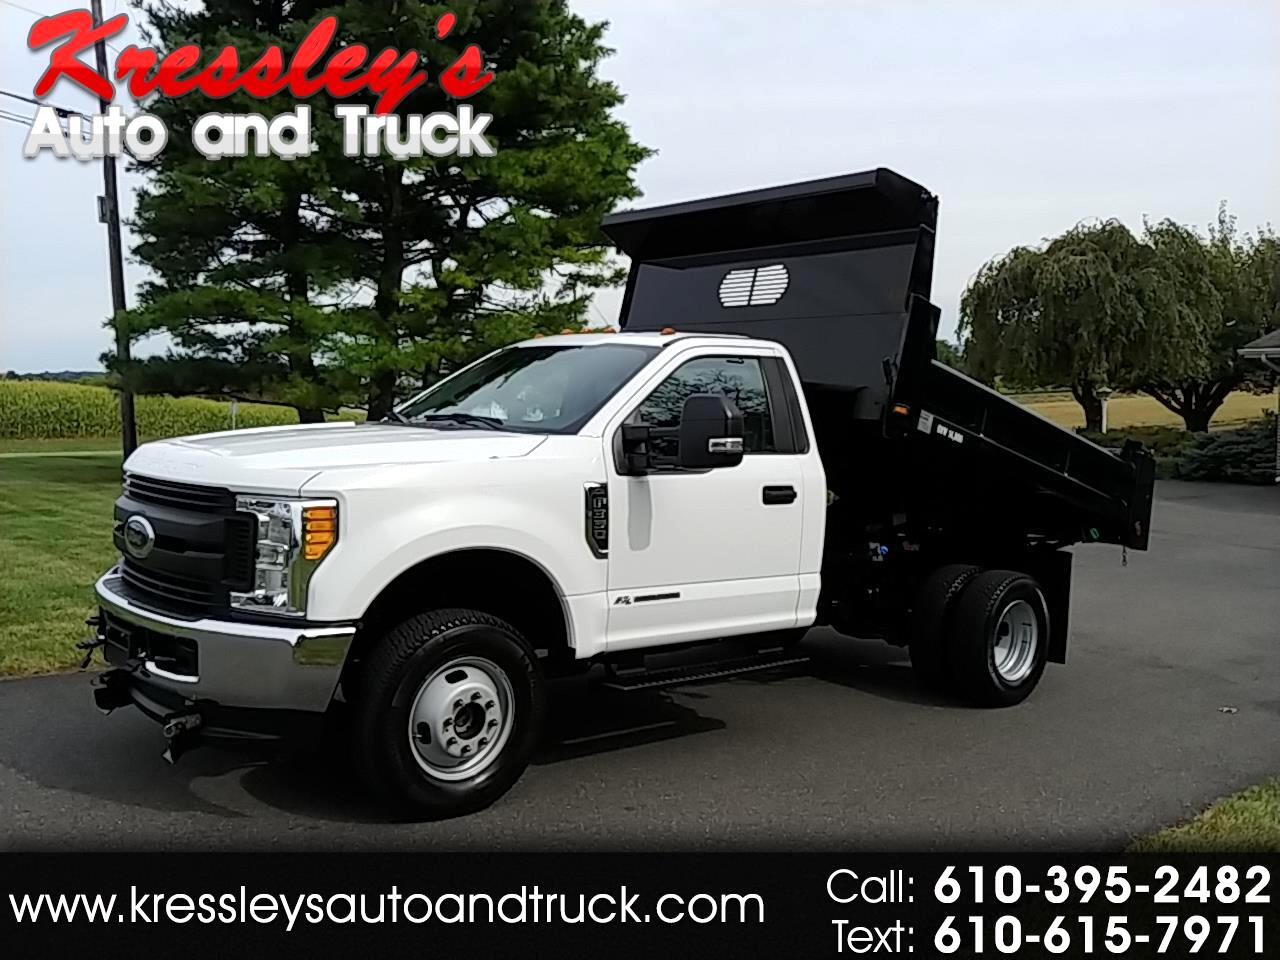 2017 Ford Super Duty F-350 DRW XL 4WD Reg Cab 145